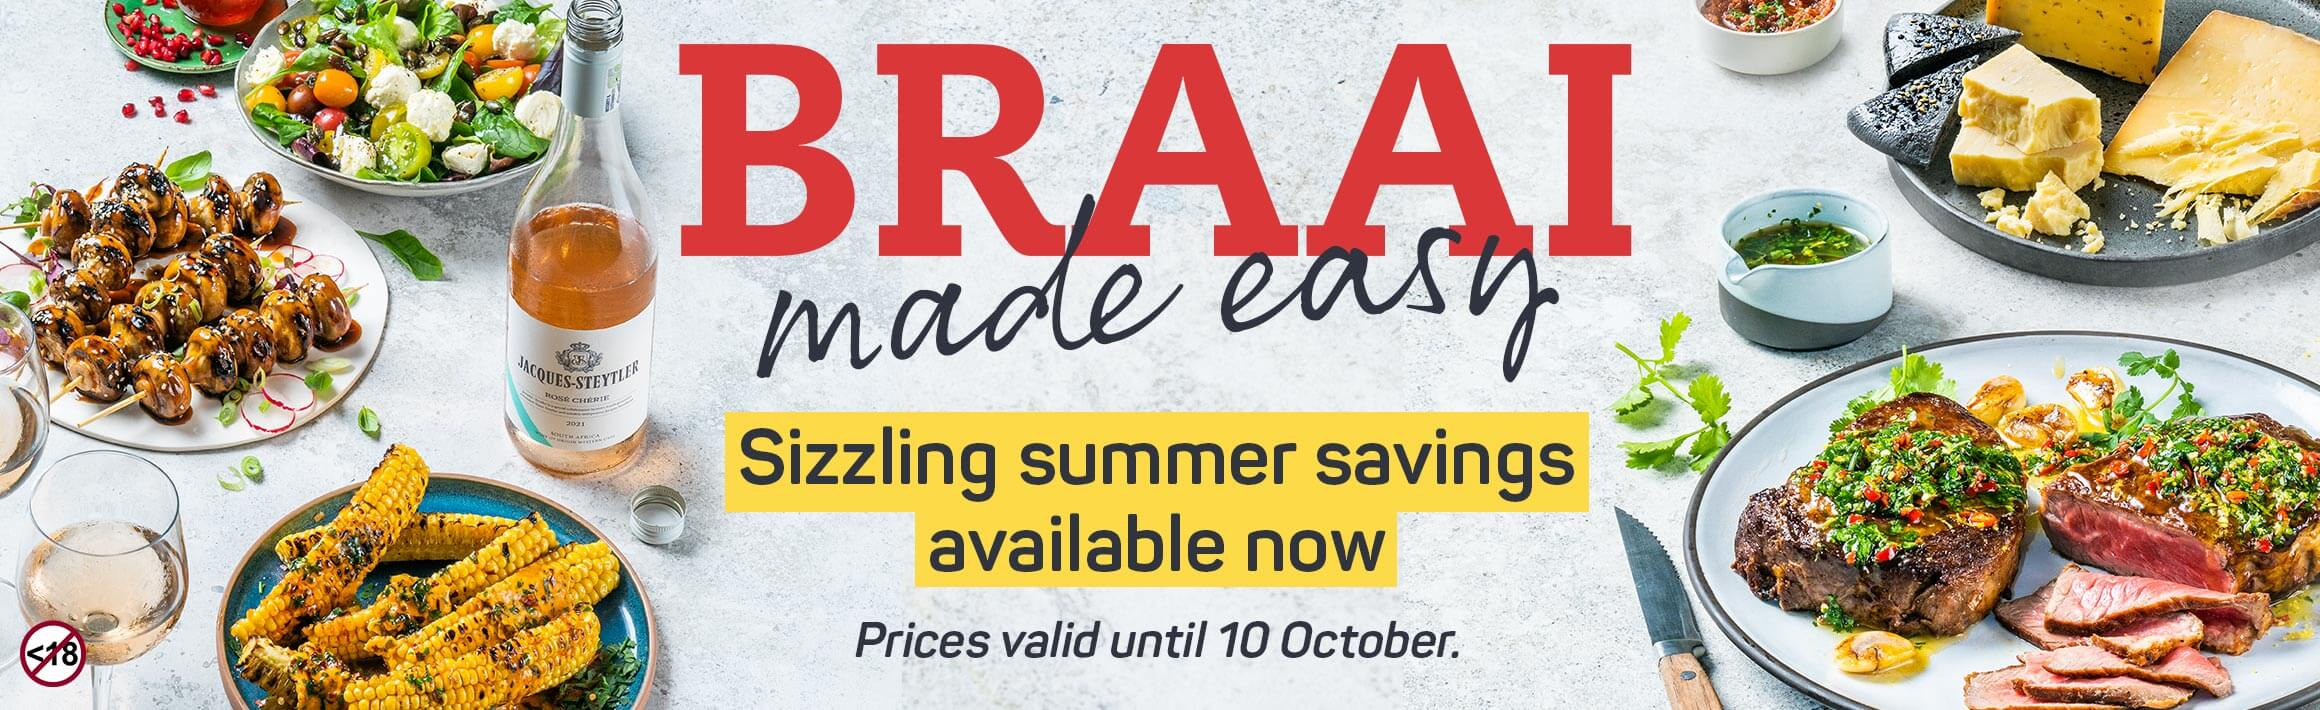 Braai made wasy. Sizzling summer savings available now.